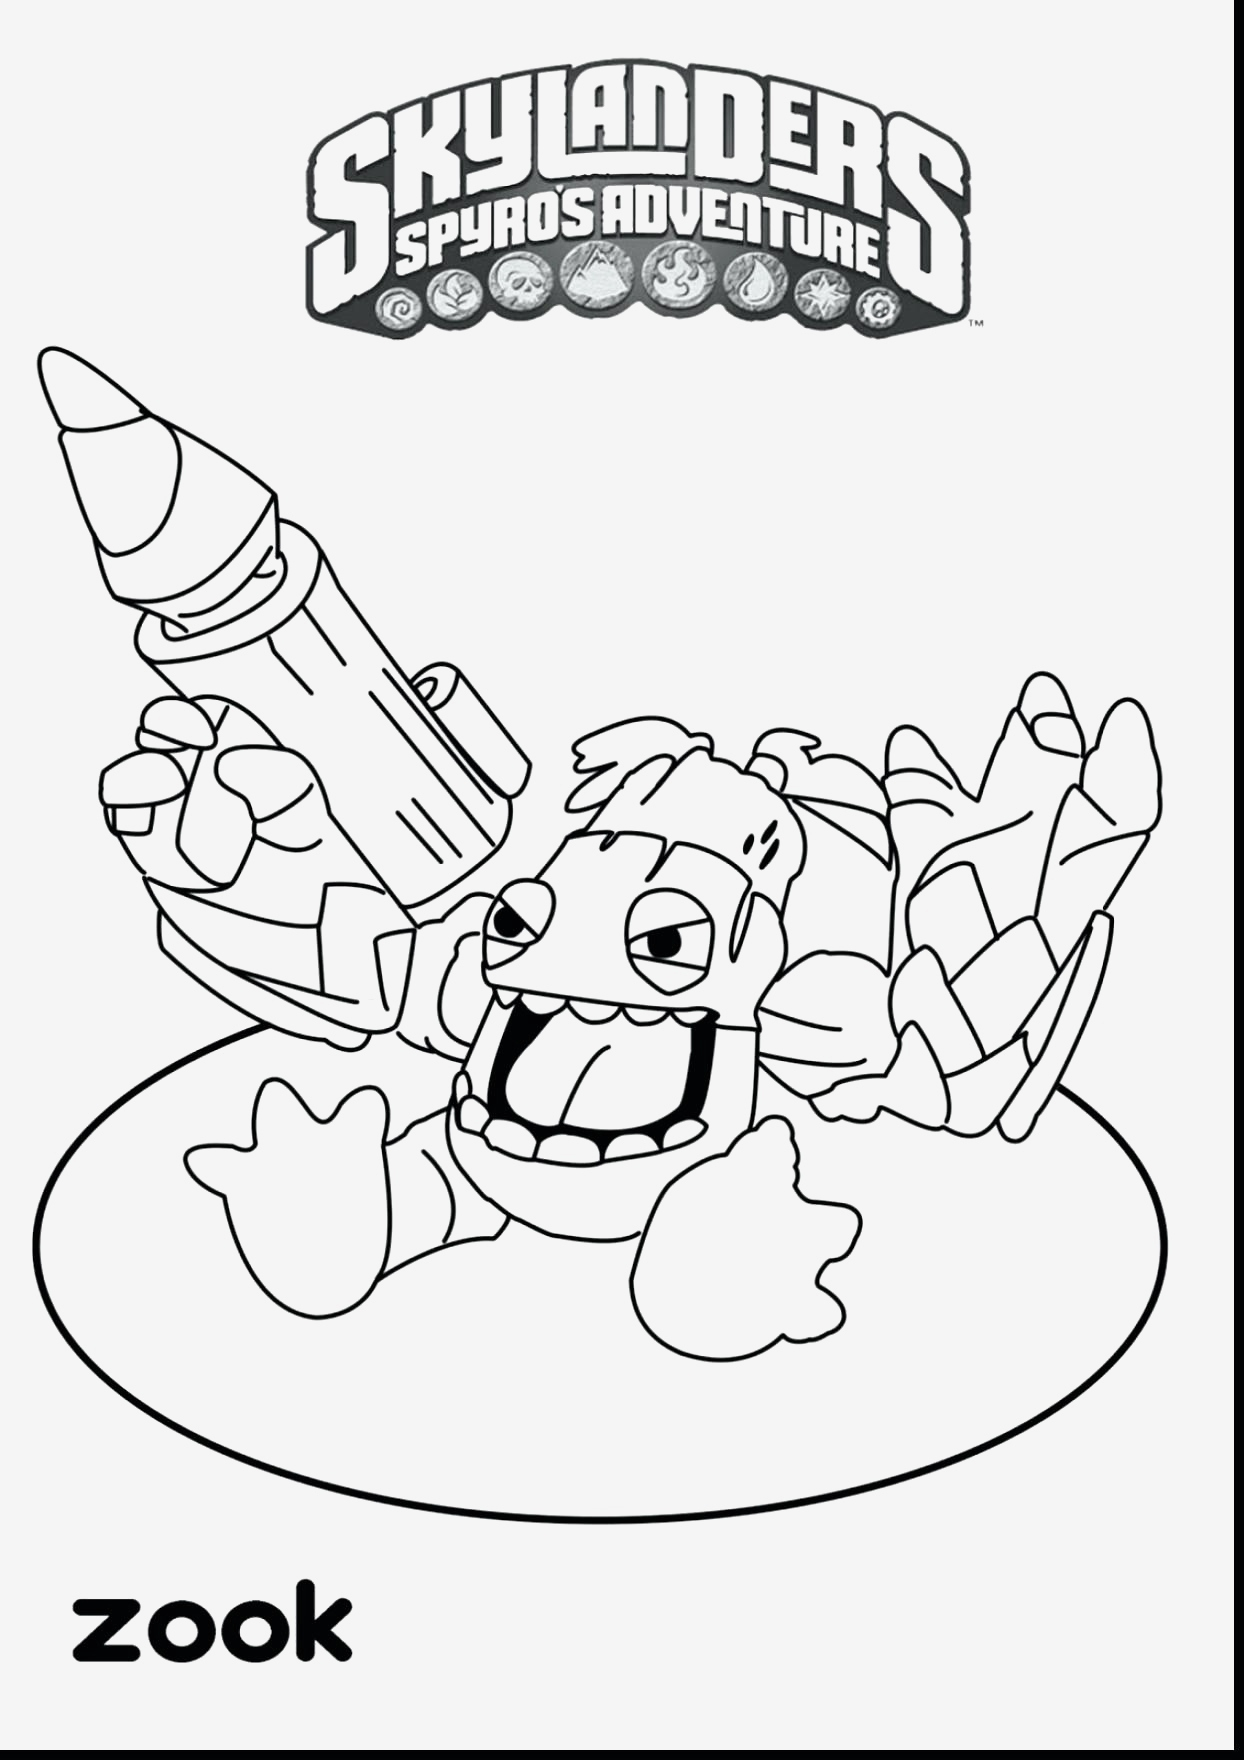 letter a coloring pages for toddlers Download-Free Printable Thanksgiving Coloring Pages Free Download Turkey Coloring Pages Free Printable 2 New Printable Fresh 13-a